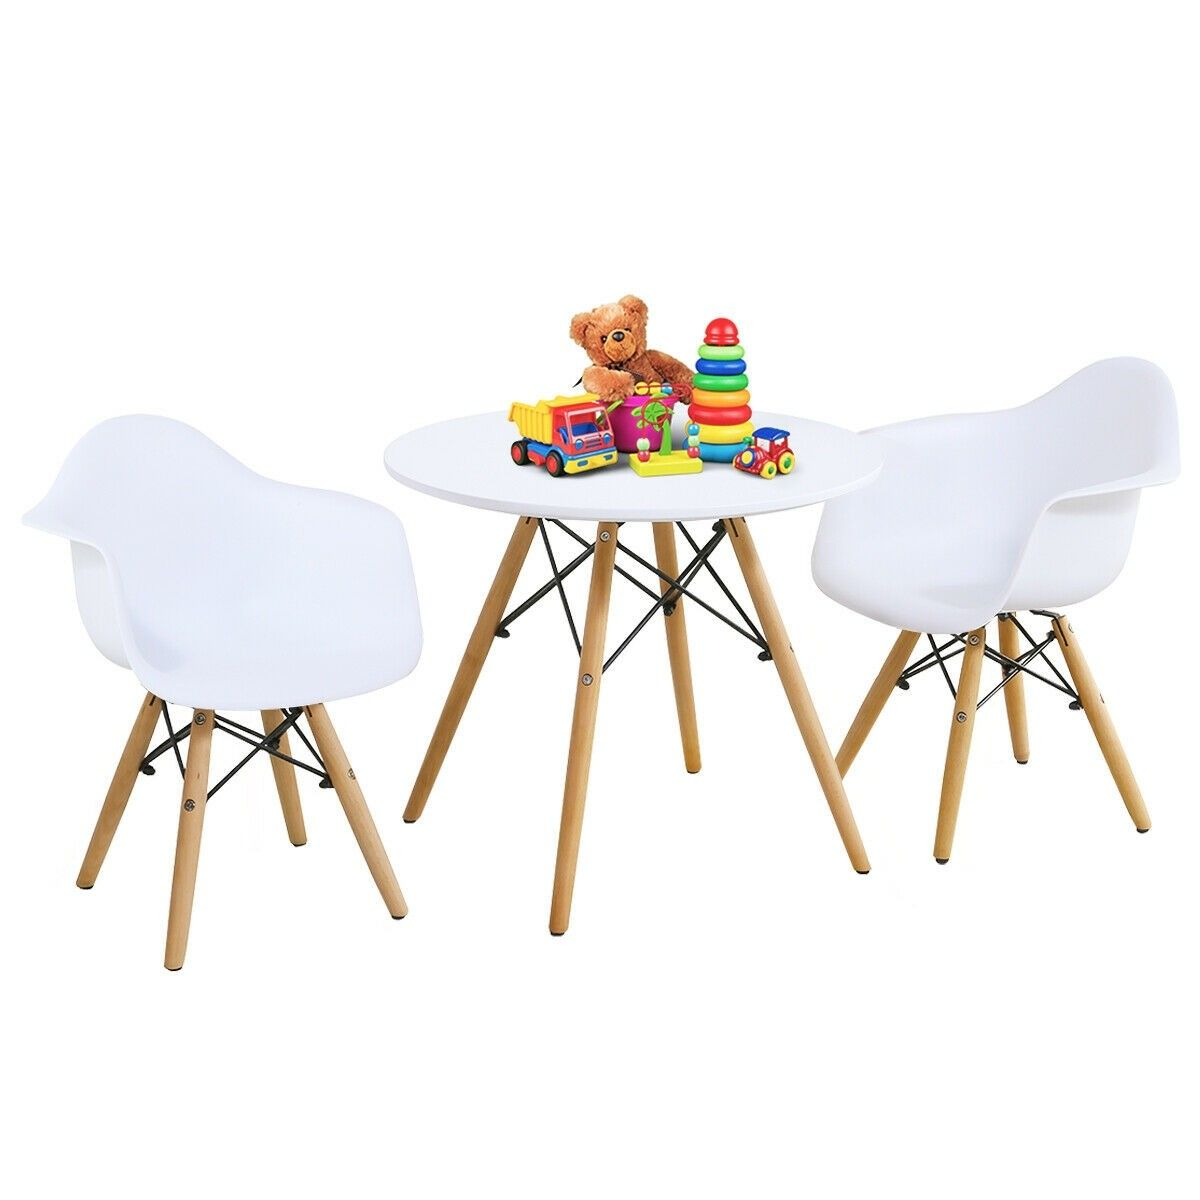 3 Piece Kids Modern Round Table Chair Set Table Chairs Desk Chair Set Kids Table Chairs